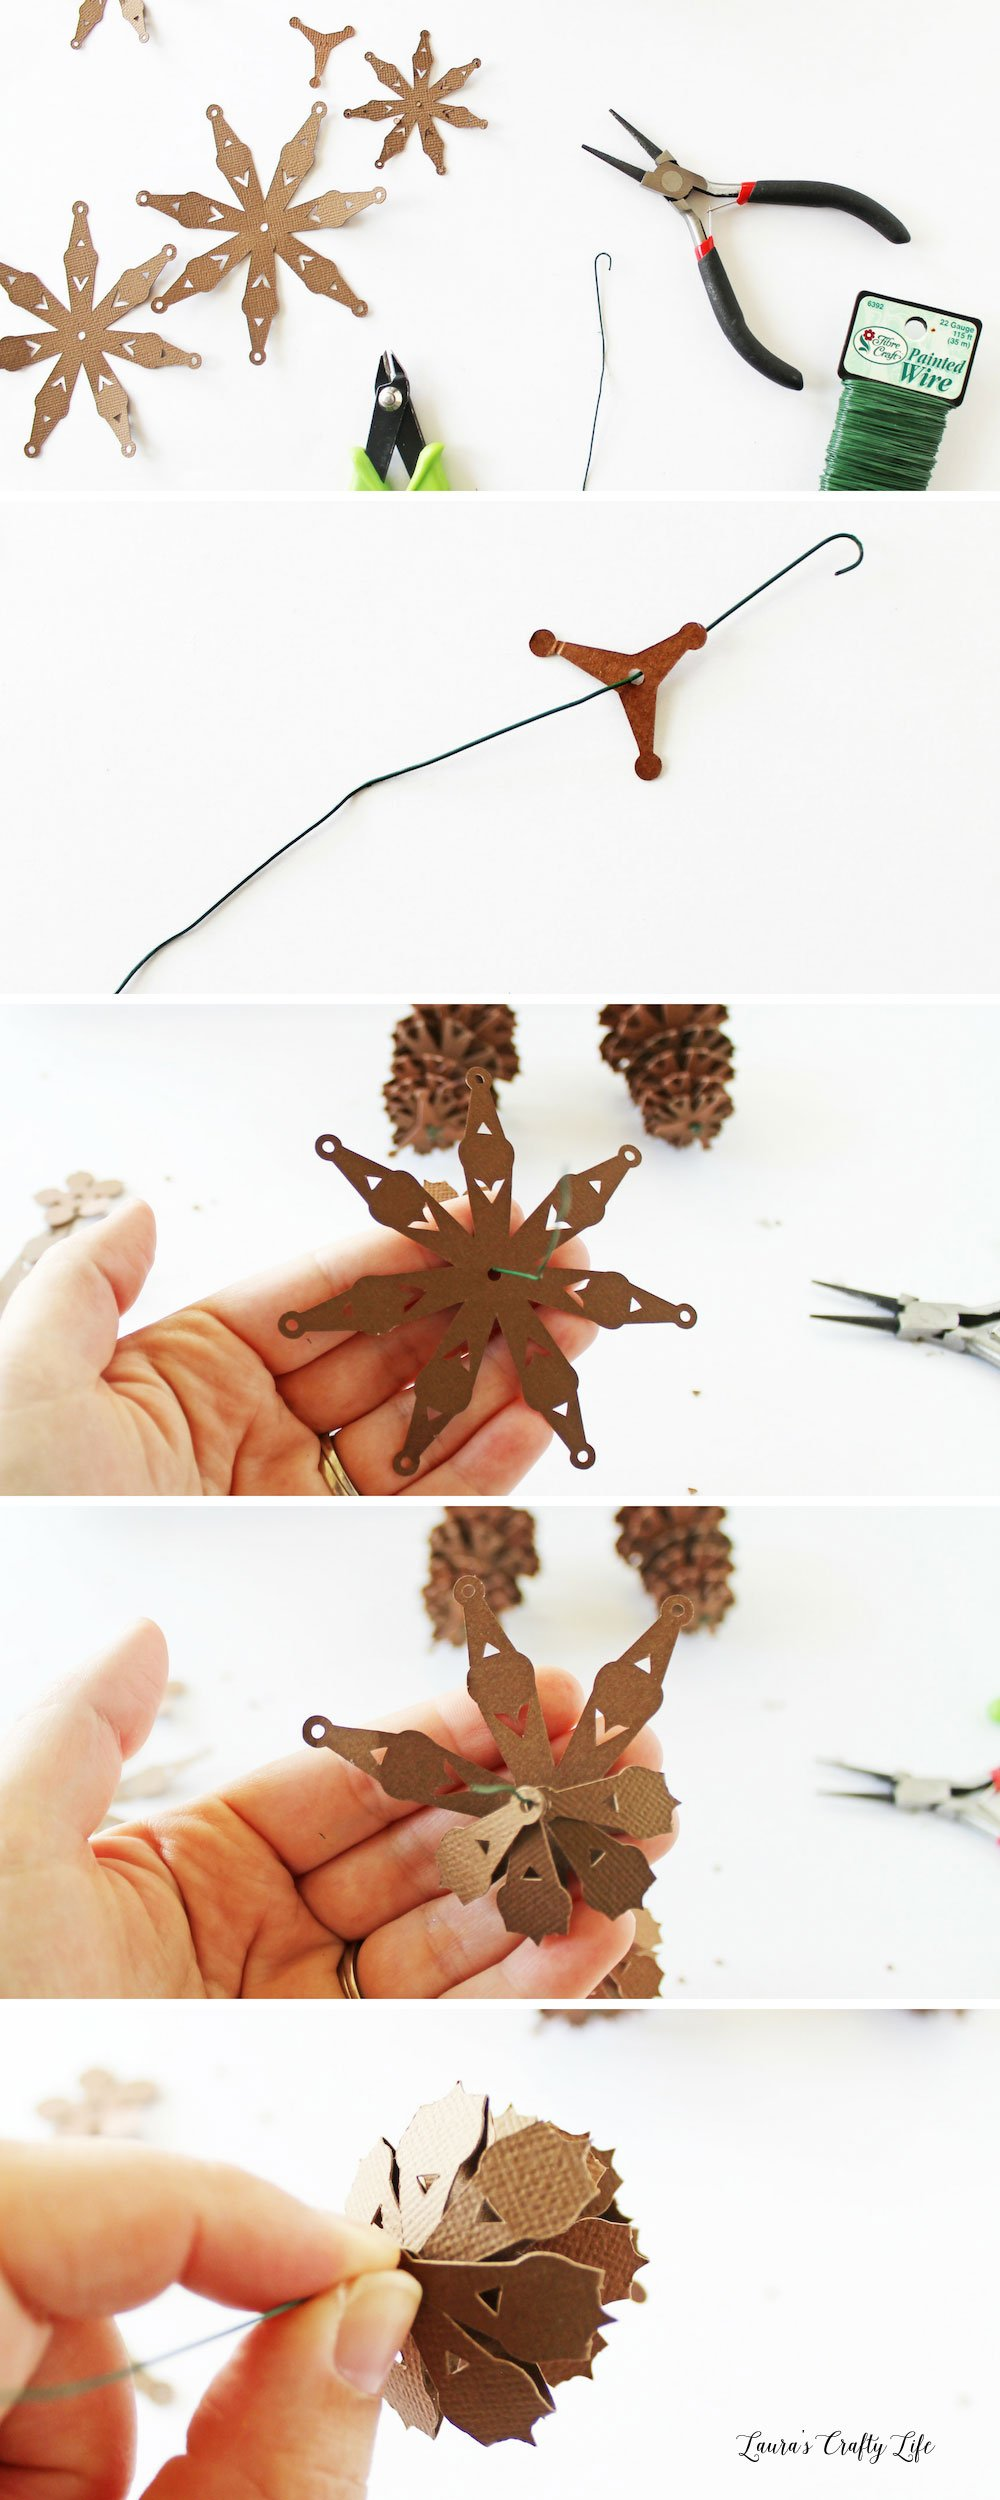 How to assemble paper pinecone